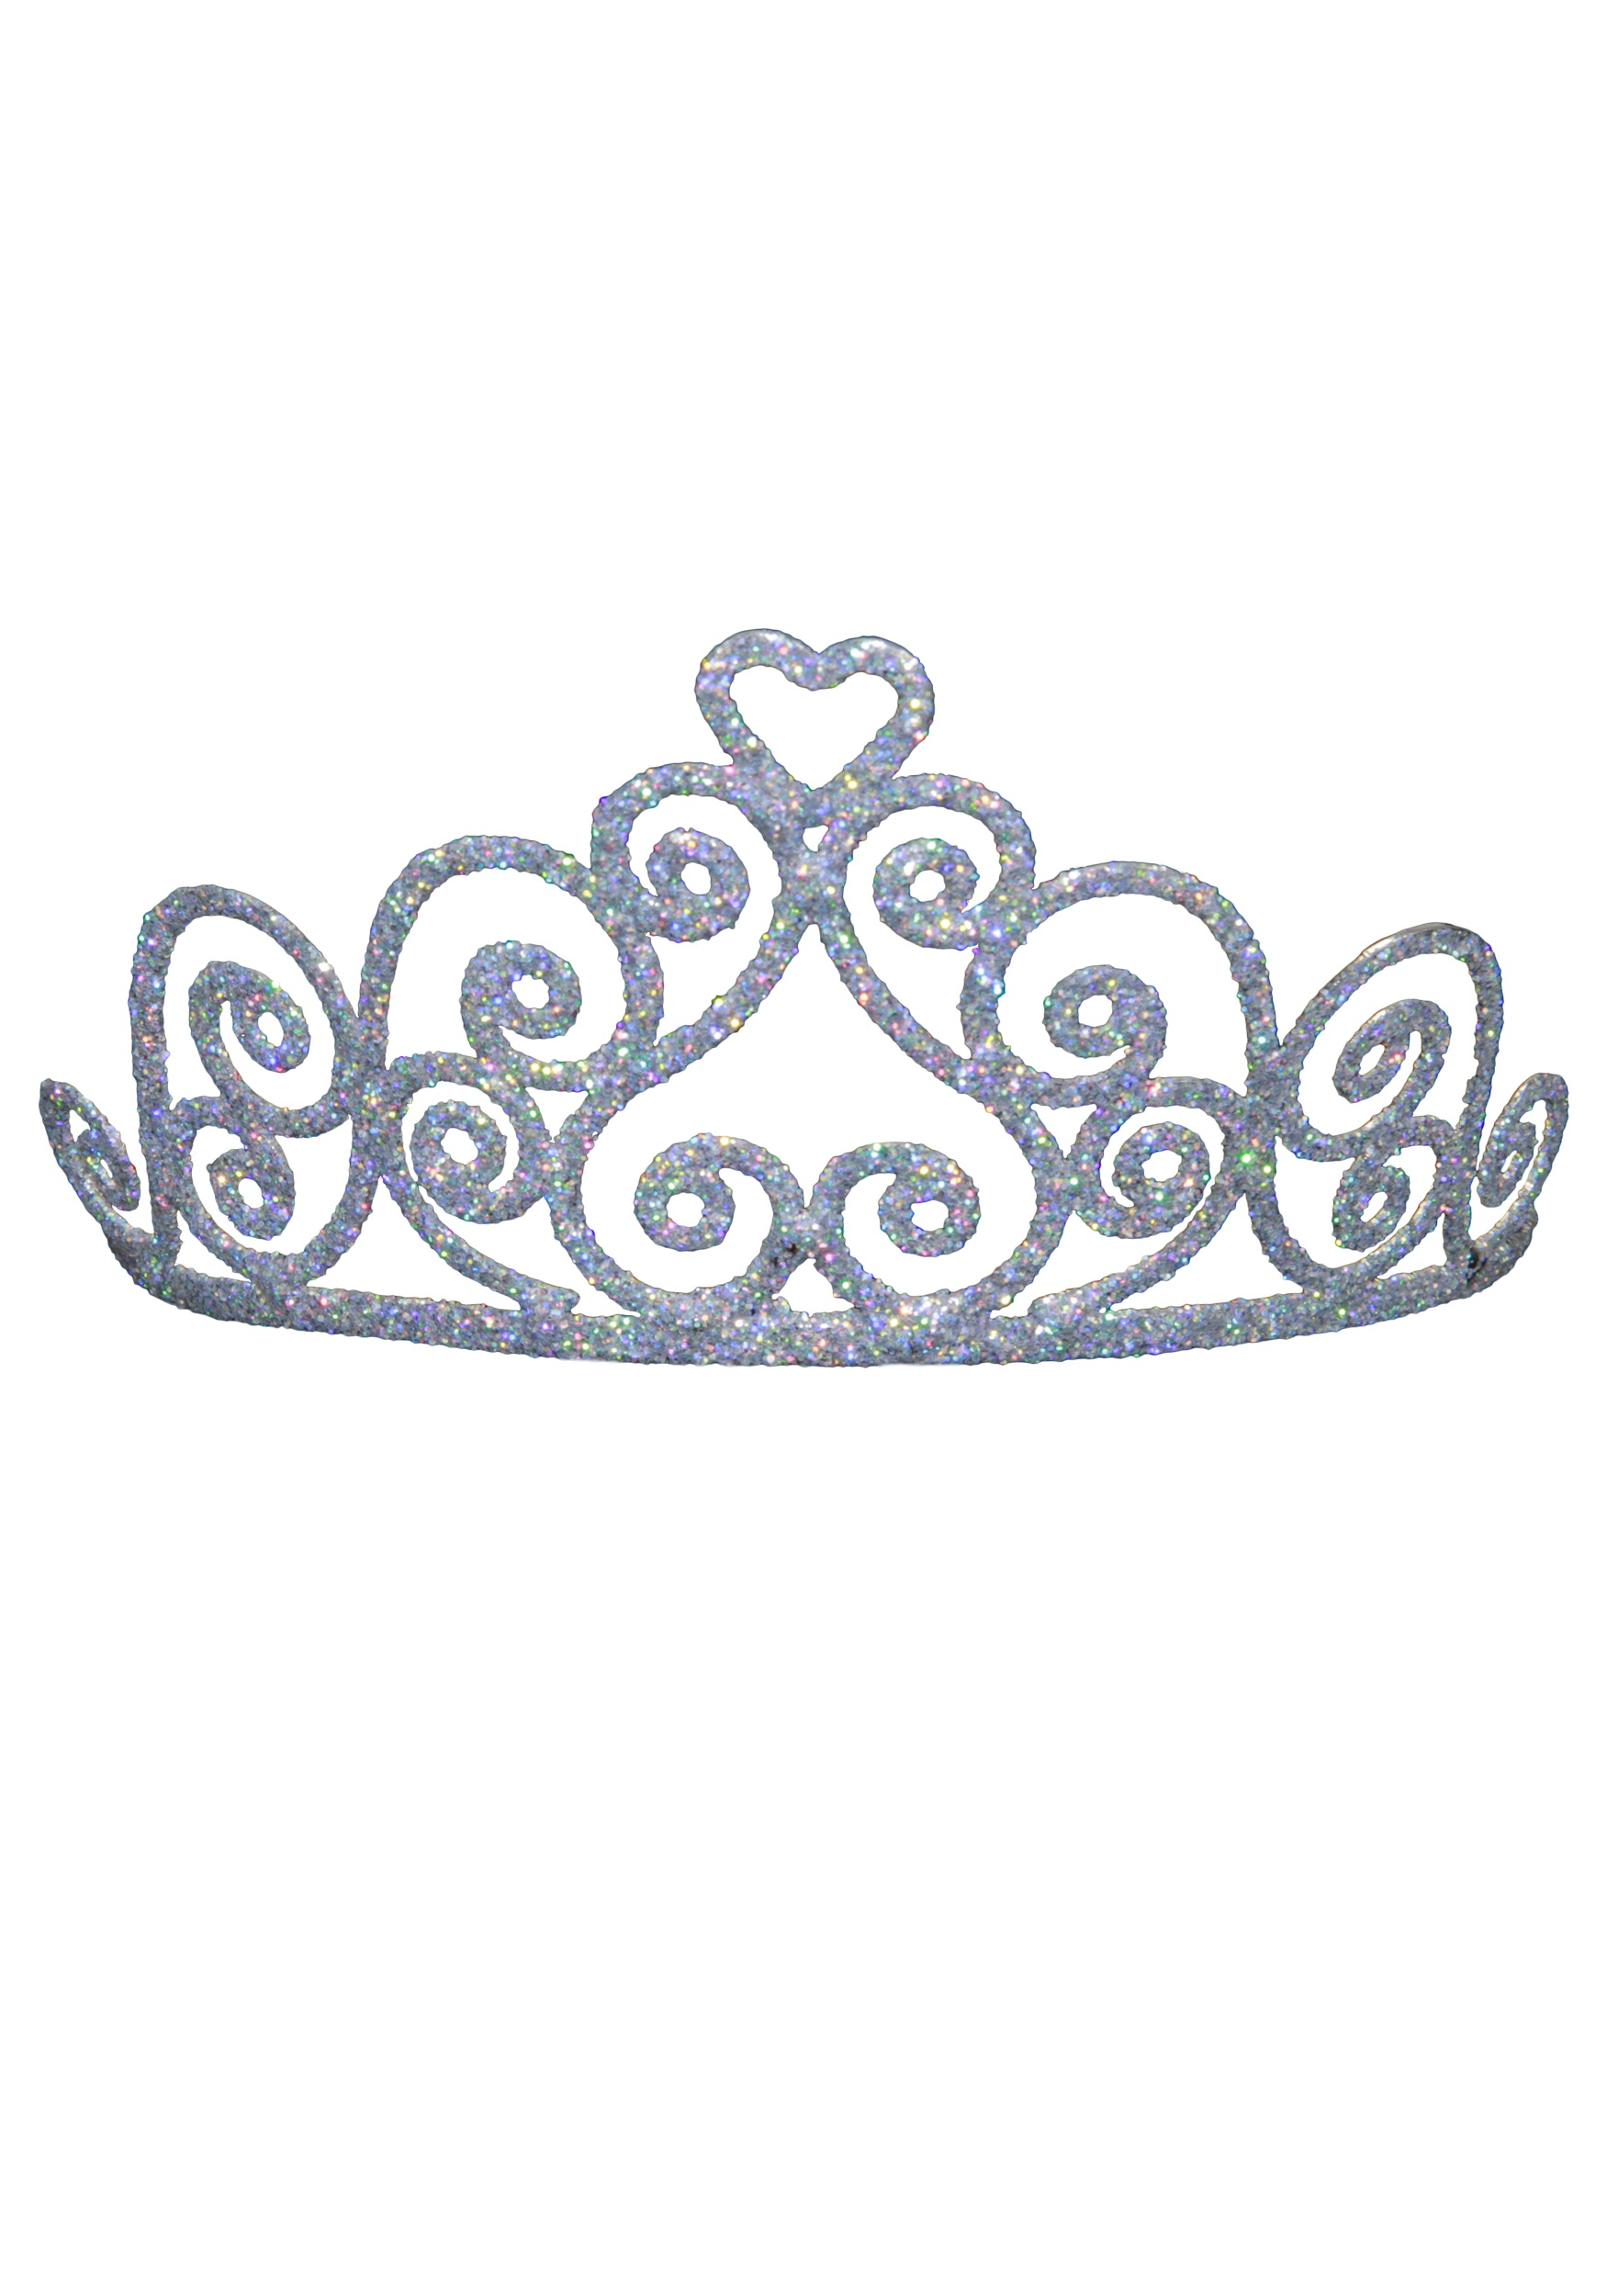 Clip art tiaras and crowns clipart 3